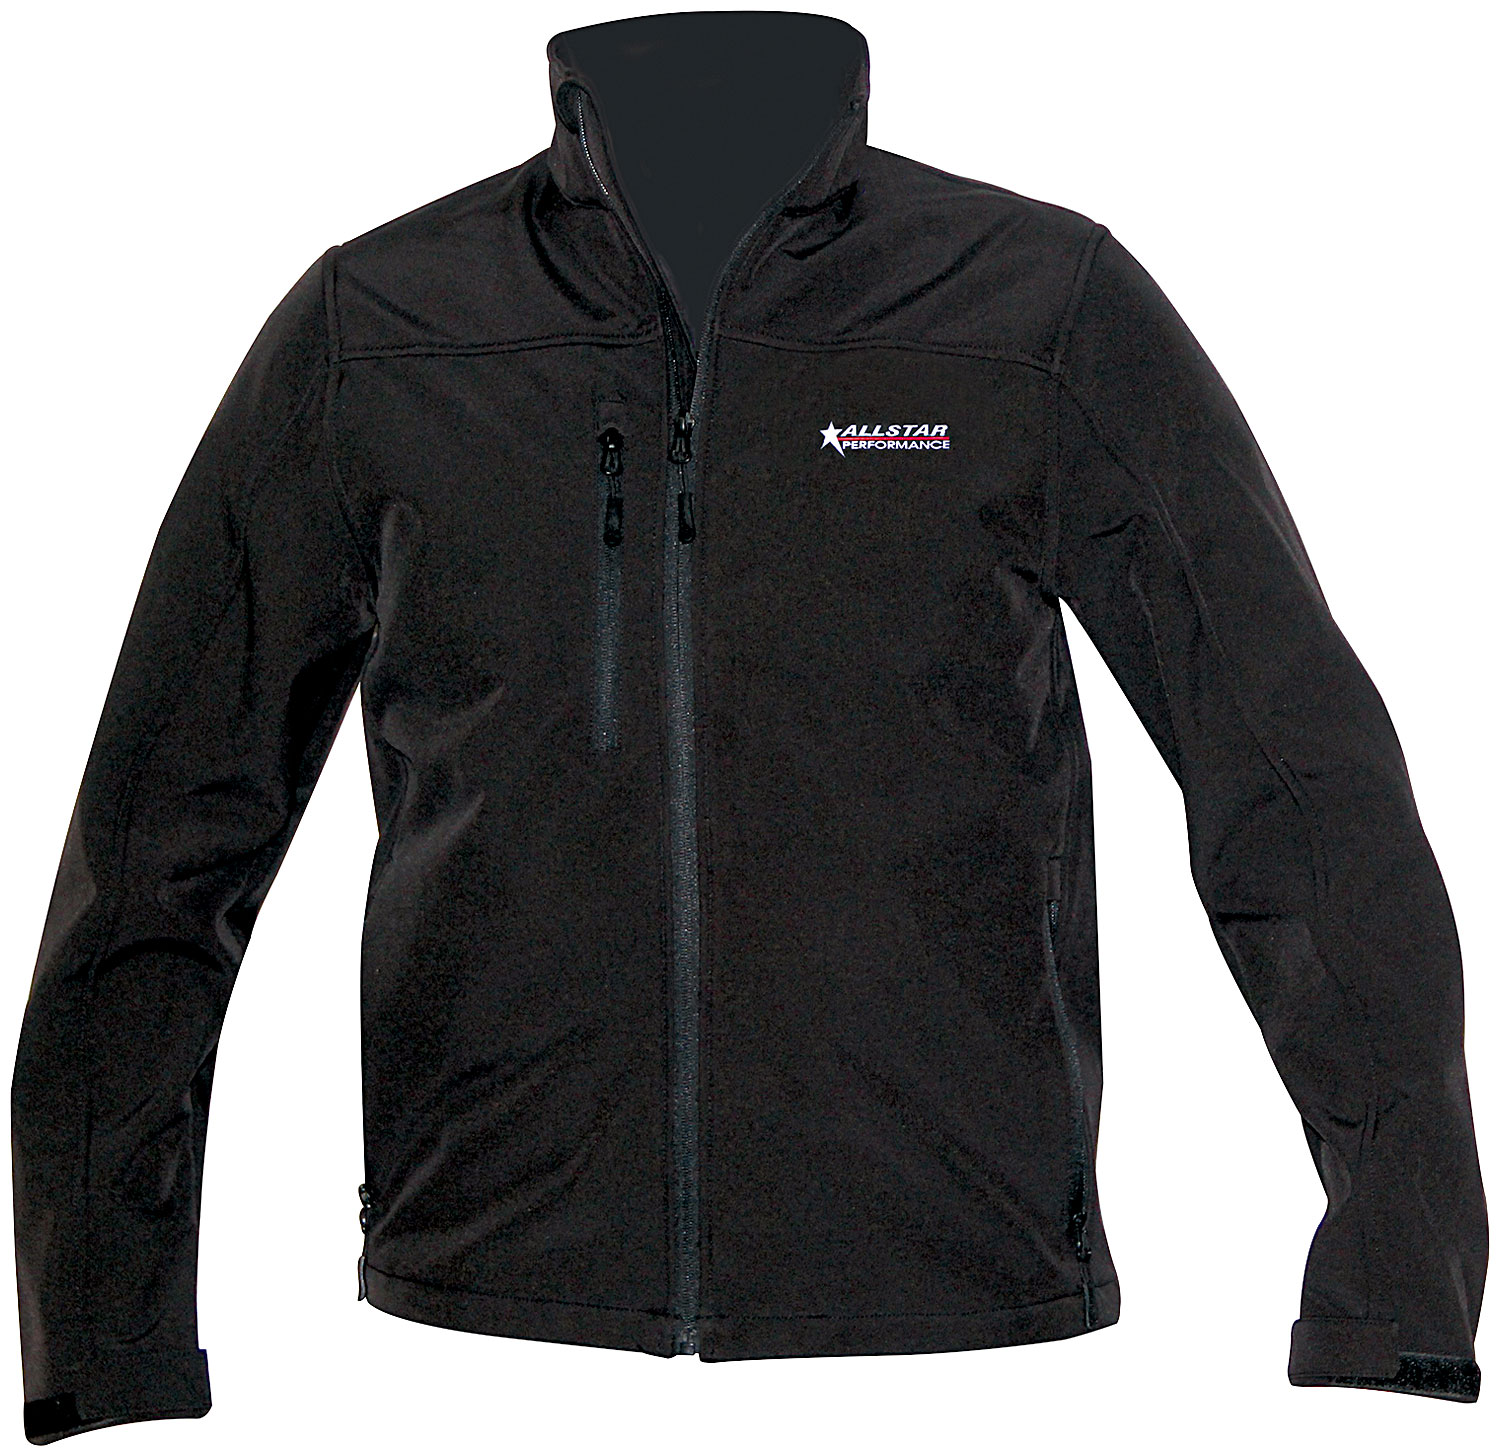 ALLSTAR PERFORMANCE 99918M Allstar Jacket Lightweight Medium